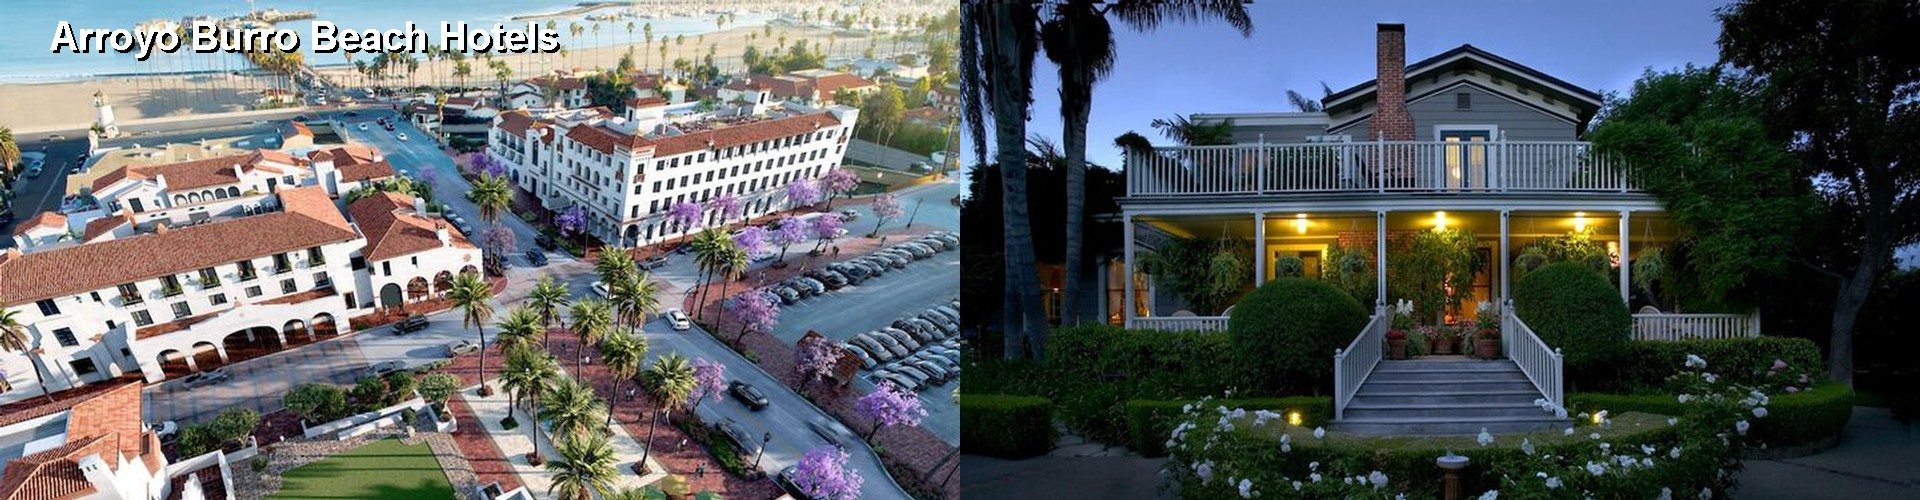 5 Best Hotels near Arroyo Burro Beach